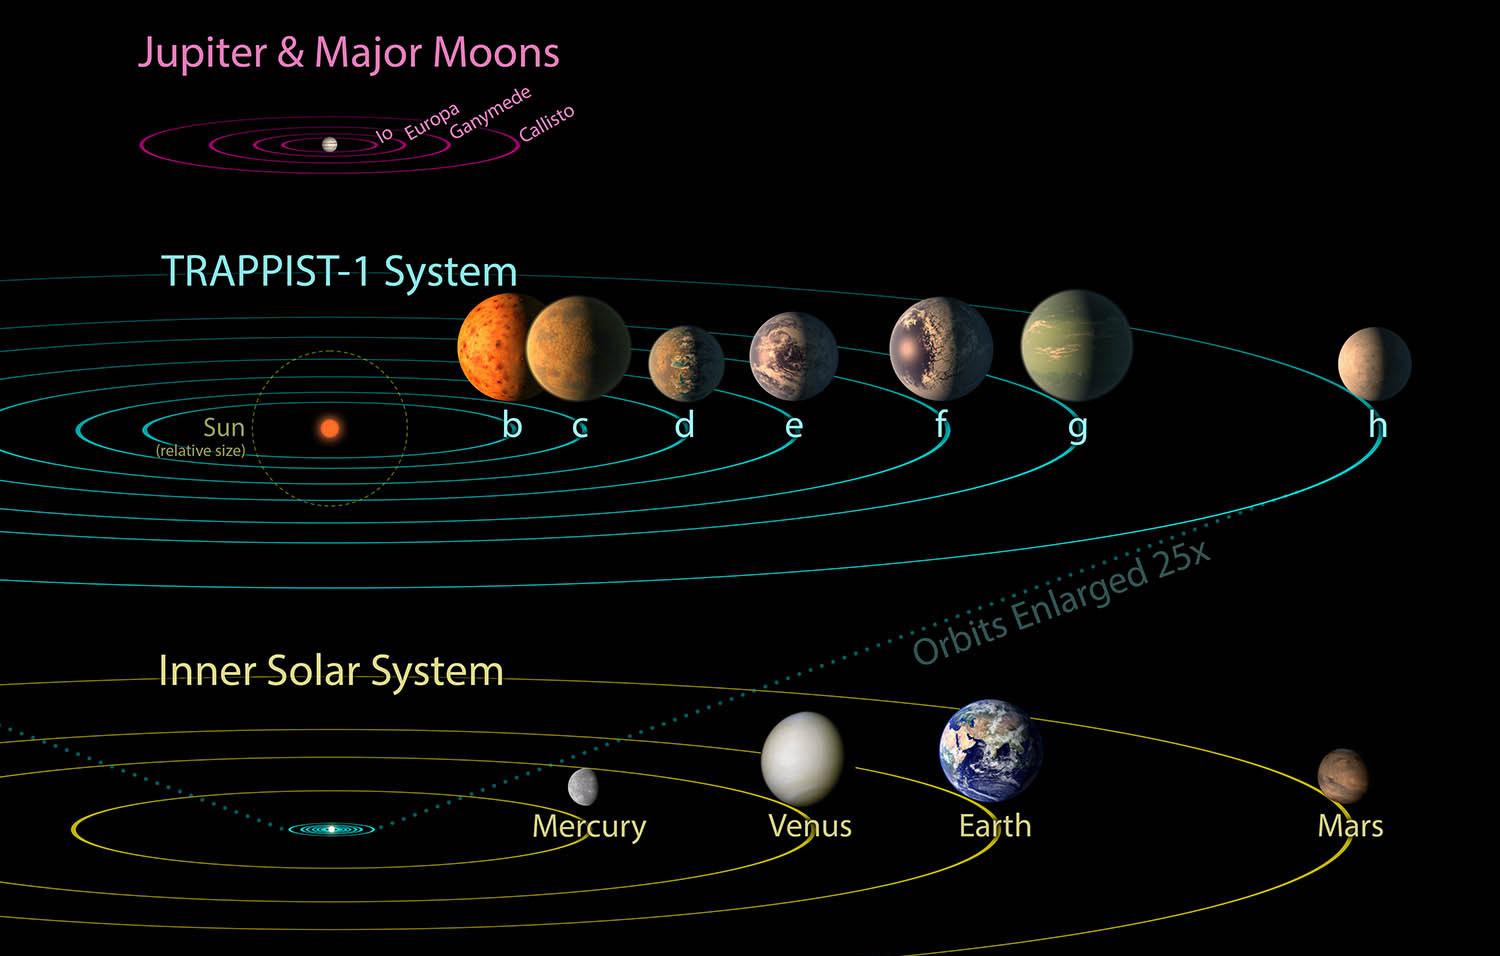 All seven planets discovered in orbit around the red dwarf star TRAPPIST-1 could easily fit inside the orbit of Mercury, the innermost planet of our solar system. In fact, they would have room to spare. TRAPPIST-1 also is only a fraction of the size of our sun; it isnt much larger than Jupiter. So the TRAPPIST-1 systems proportions look more like Jupiter and its moons than those of our solar system. The seven planets of TRAPPIST-1 are all Earth-sized and terrestrial, according to research published in 2017 in the journal Nature. TRAPPIST-1 is an ultra-cool dwarf star in the constellation Aquarius, and its planets orbit very close to it. The system has been revealed through observations from NASA's Spitzer Space Telescope and the ground-based TRAPPIST (TRAnsiting Planets and PlanetesImals Small Telescope) telescope, as well as other ground-based observatories. The system was named for the TRAPPIST telescope. NASA's Jet Propulsion Laboratory, Pasadena, California, manages the Spitzer Space Telescope mission for NASA's Science Mission Directorate, Washington. Science operations are conducted at the Spitzer Science Center at Caltech in Pasadena. Spacecraft operations are based at Lockheed Martin Space Systems Company, Littleton, Colorado. Data are archived at the Infrared Science Archive housed at Caltech/IPAC. Caltech manages JPL for NASA.